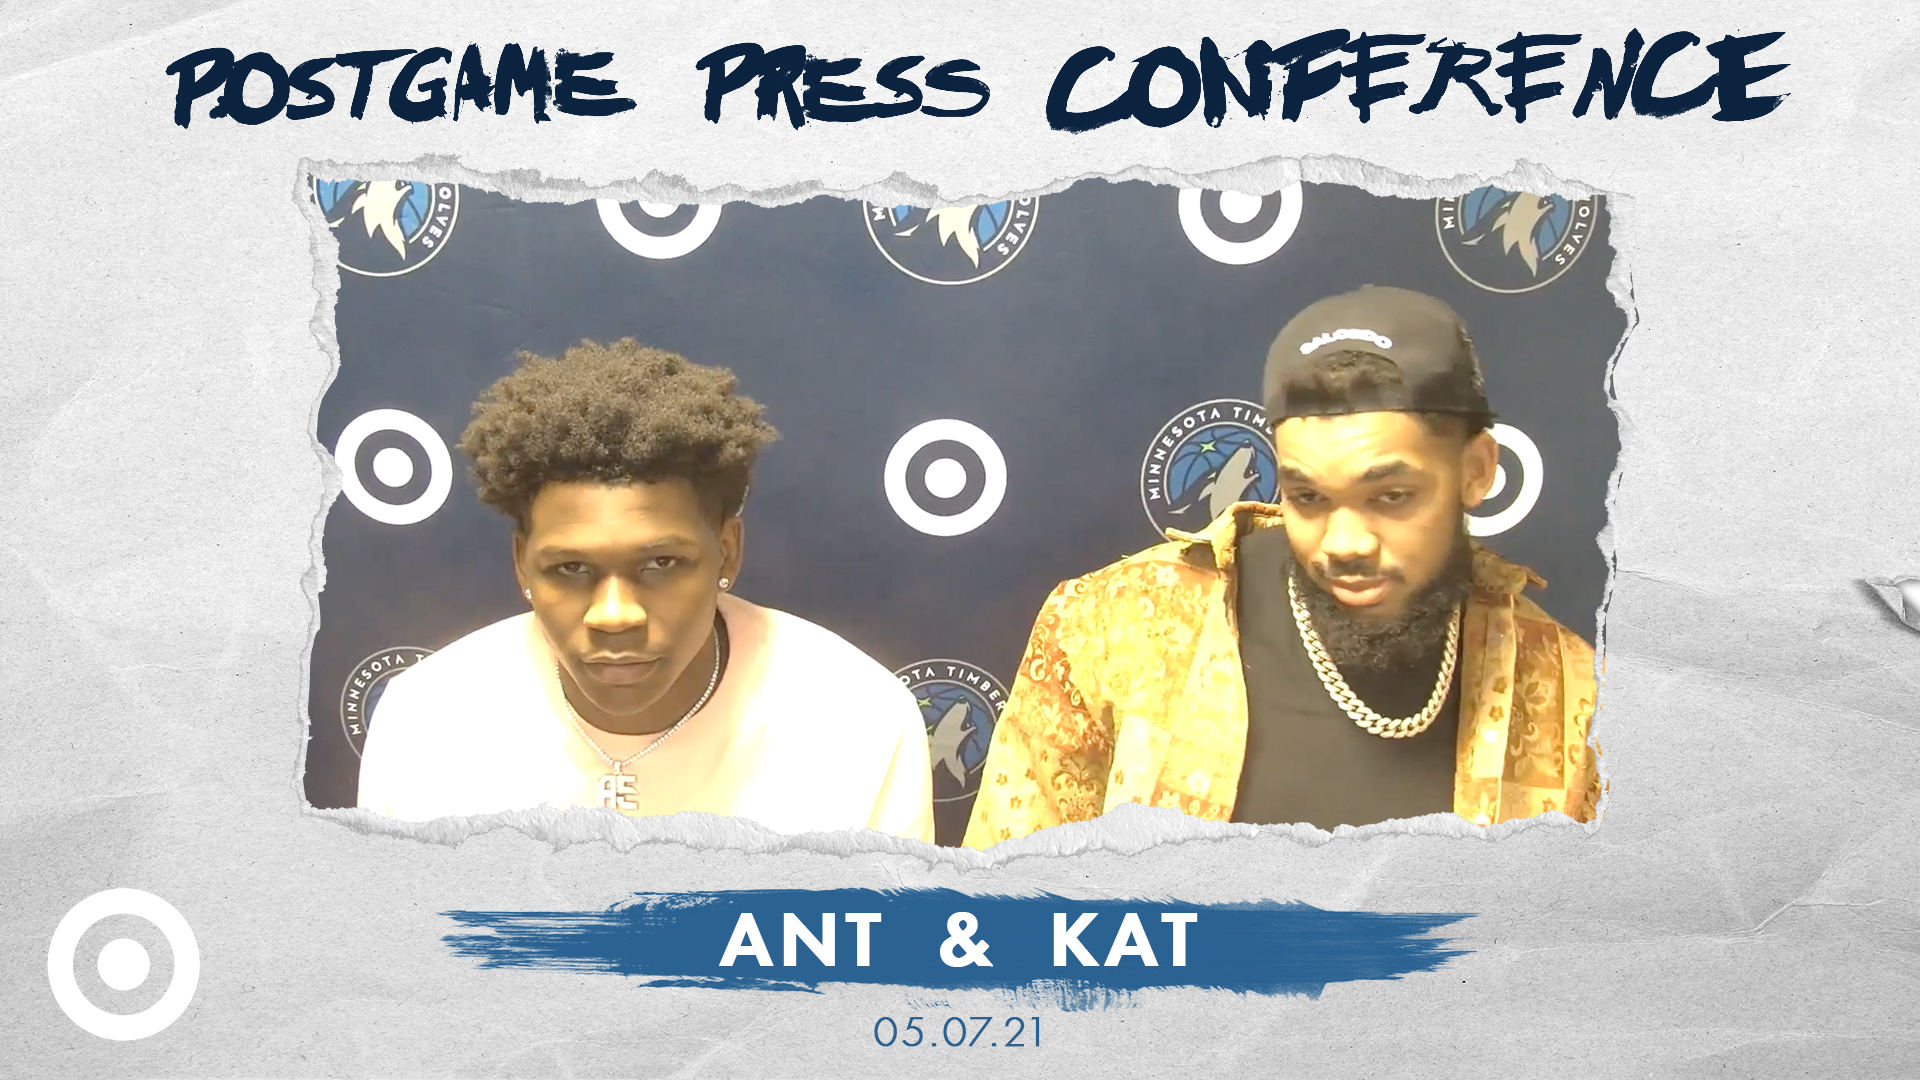 Anthony Edwards, Karl-Anthony Towns Postgame Press Conference - May 7, 2021